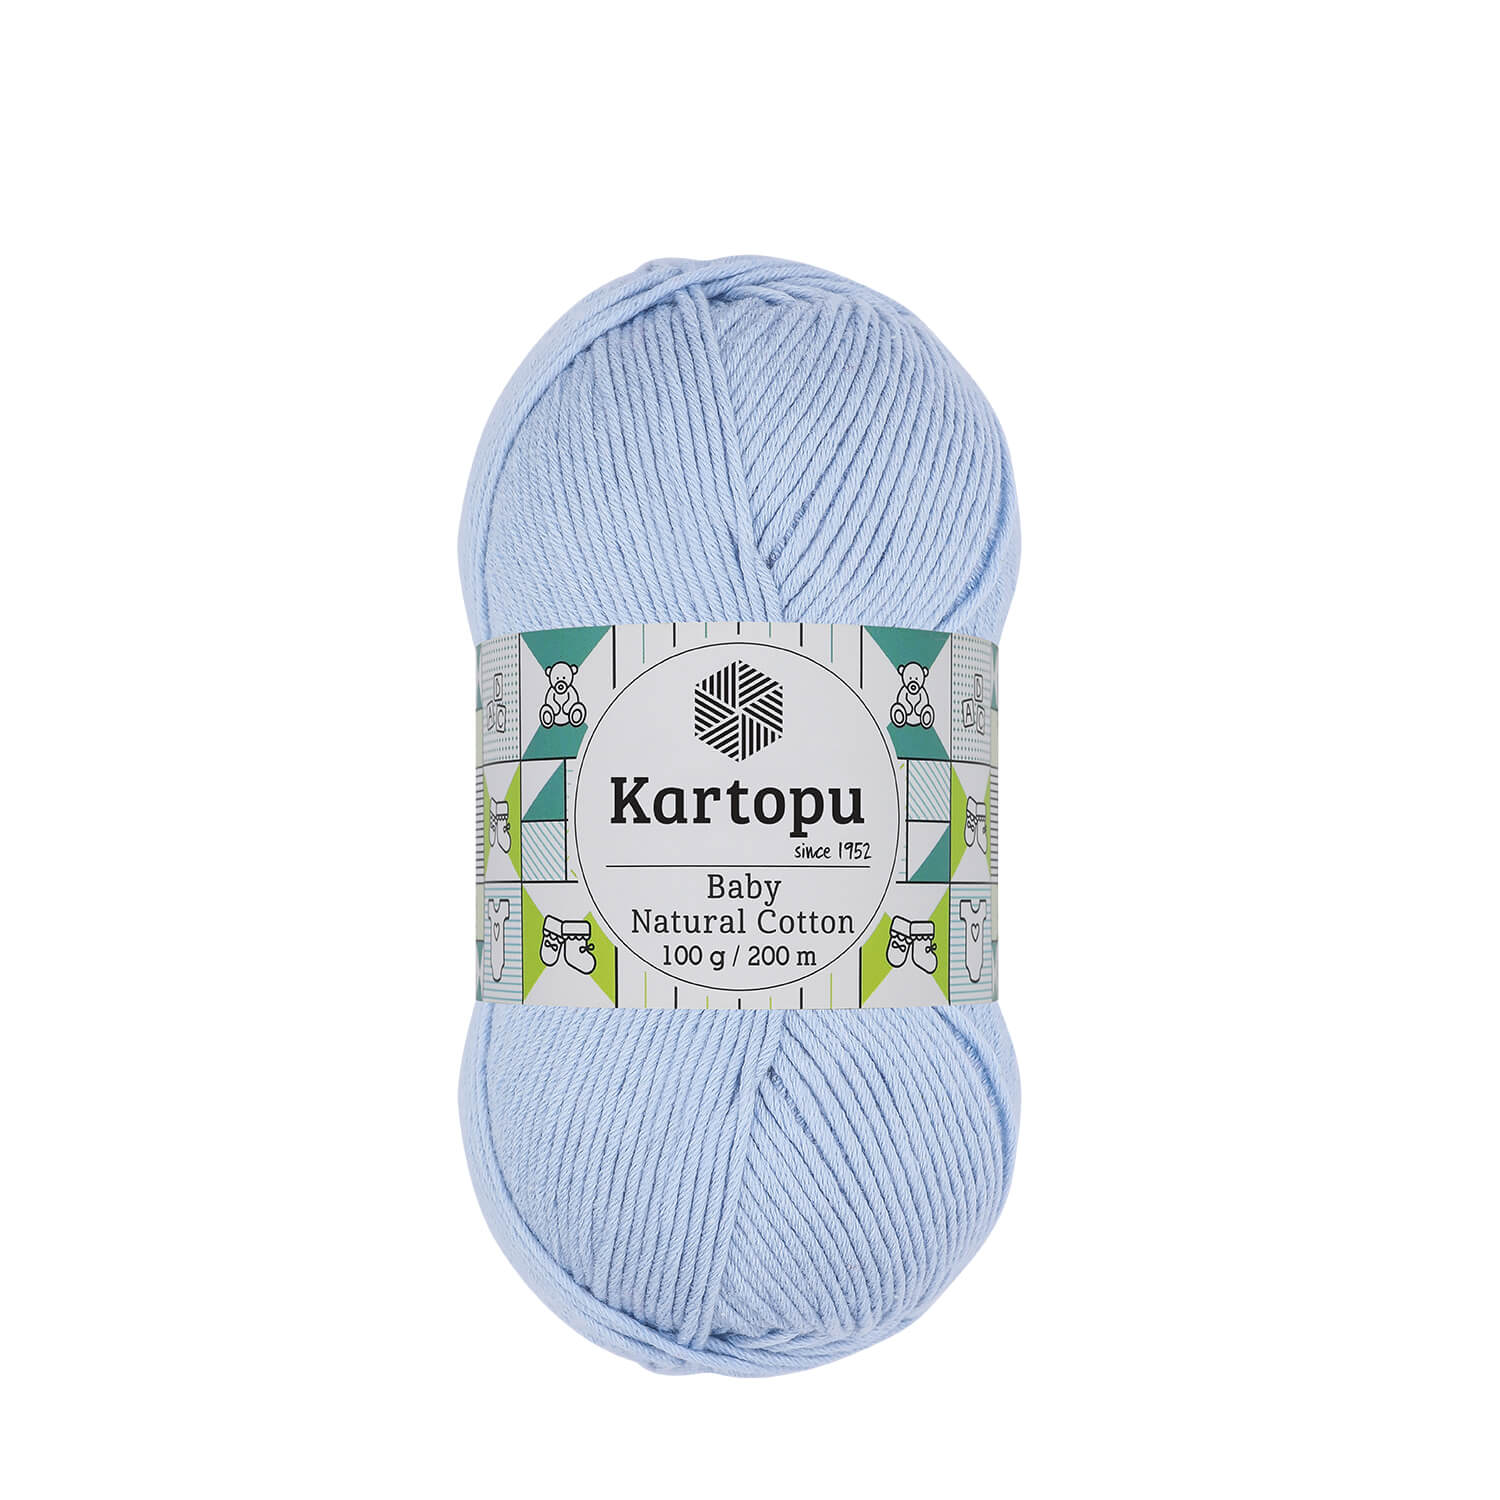 Baby Natural Cotton K544